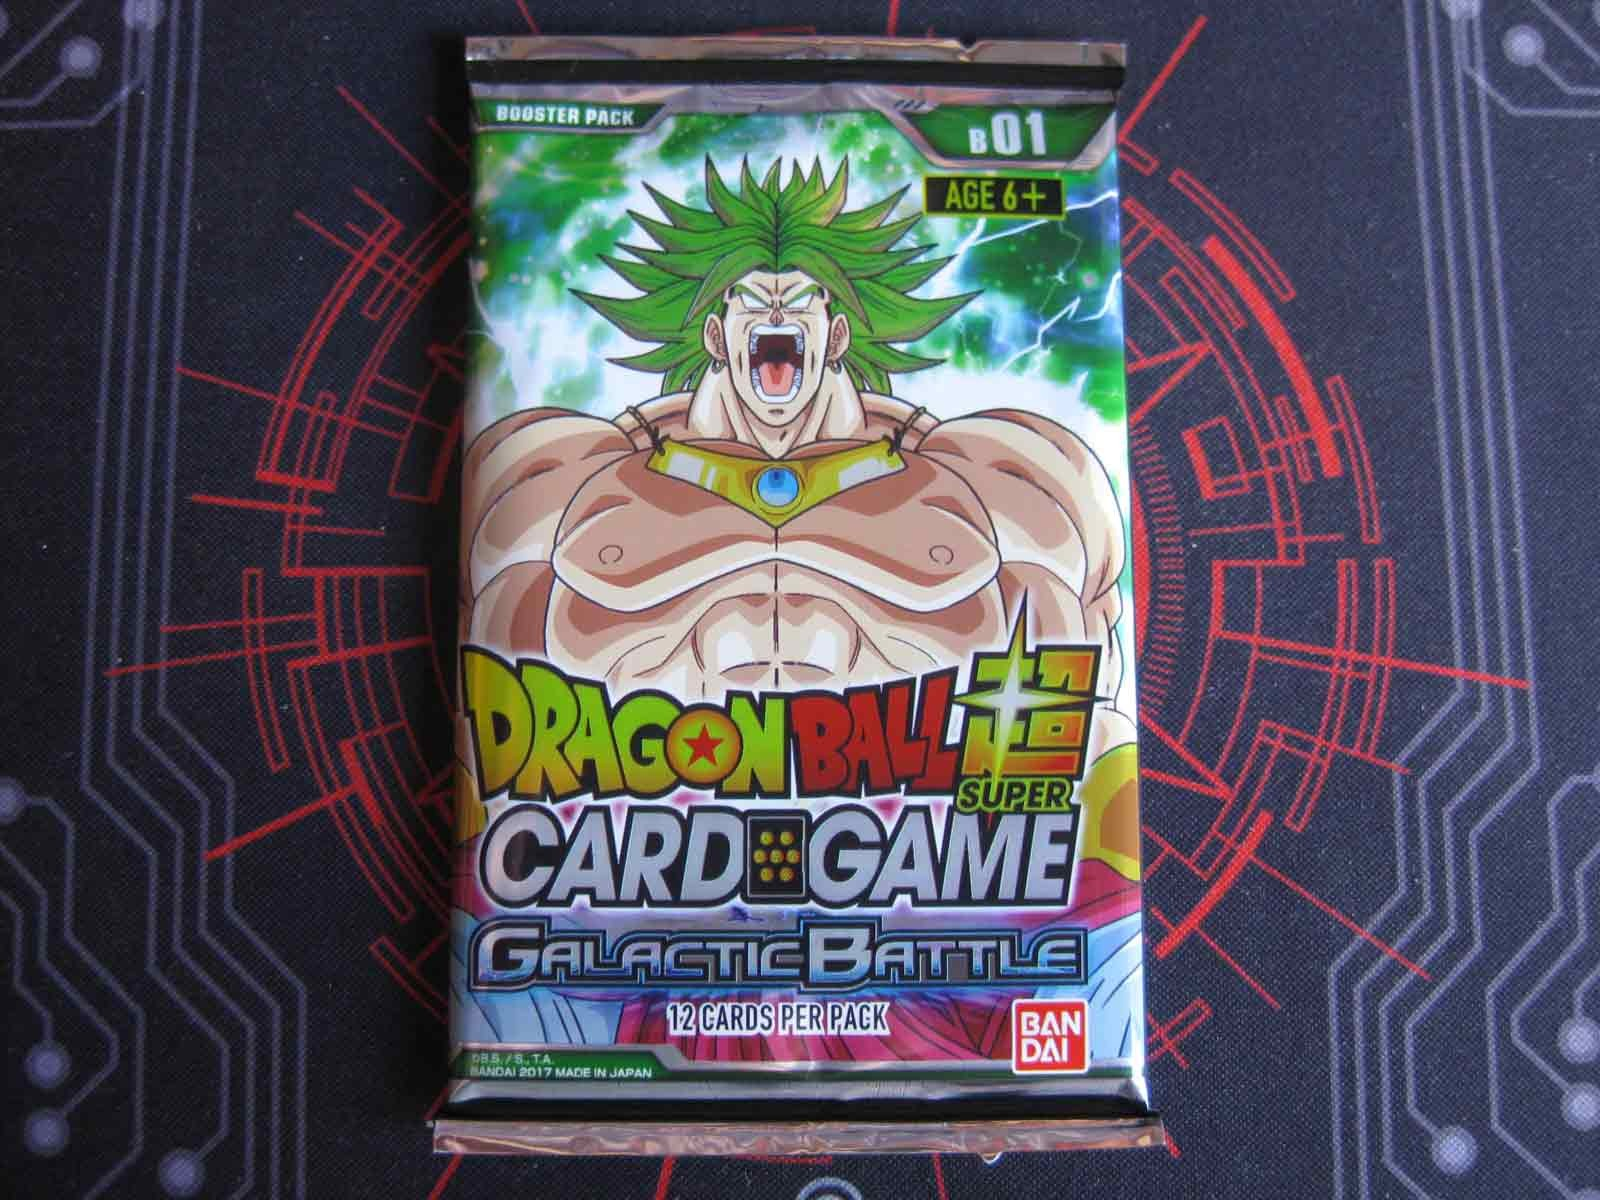 Dragon Ball Super Booster Pack: Galactic Battle B01: Broly Pack